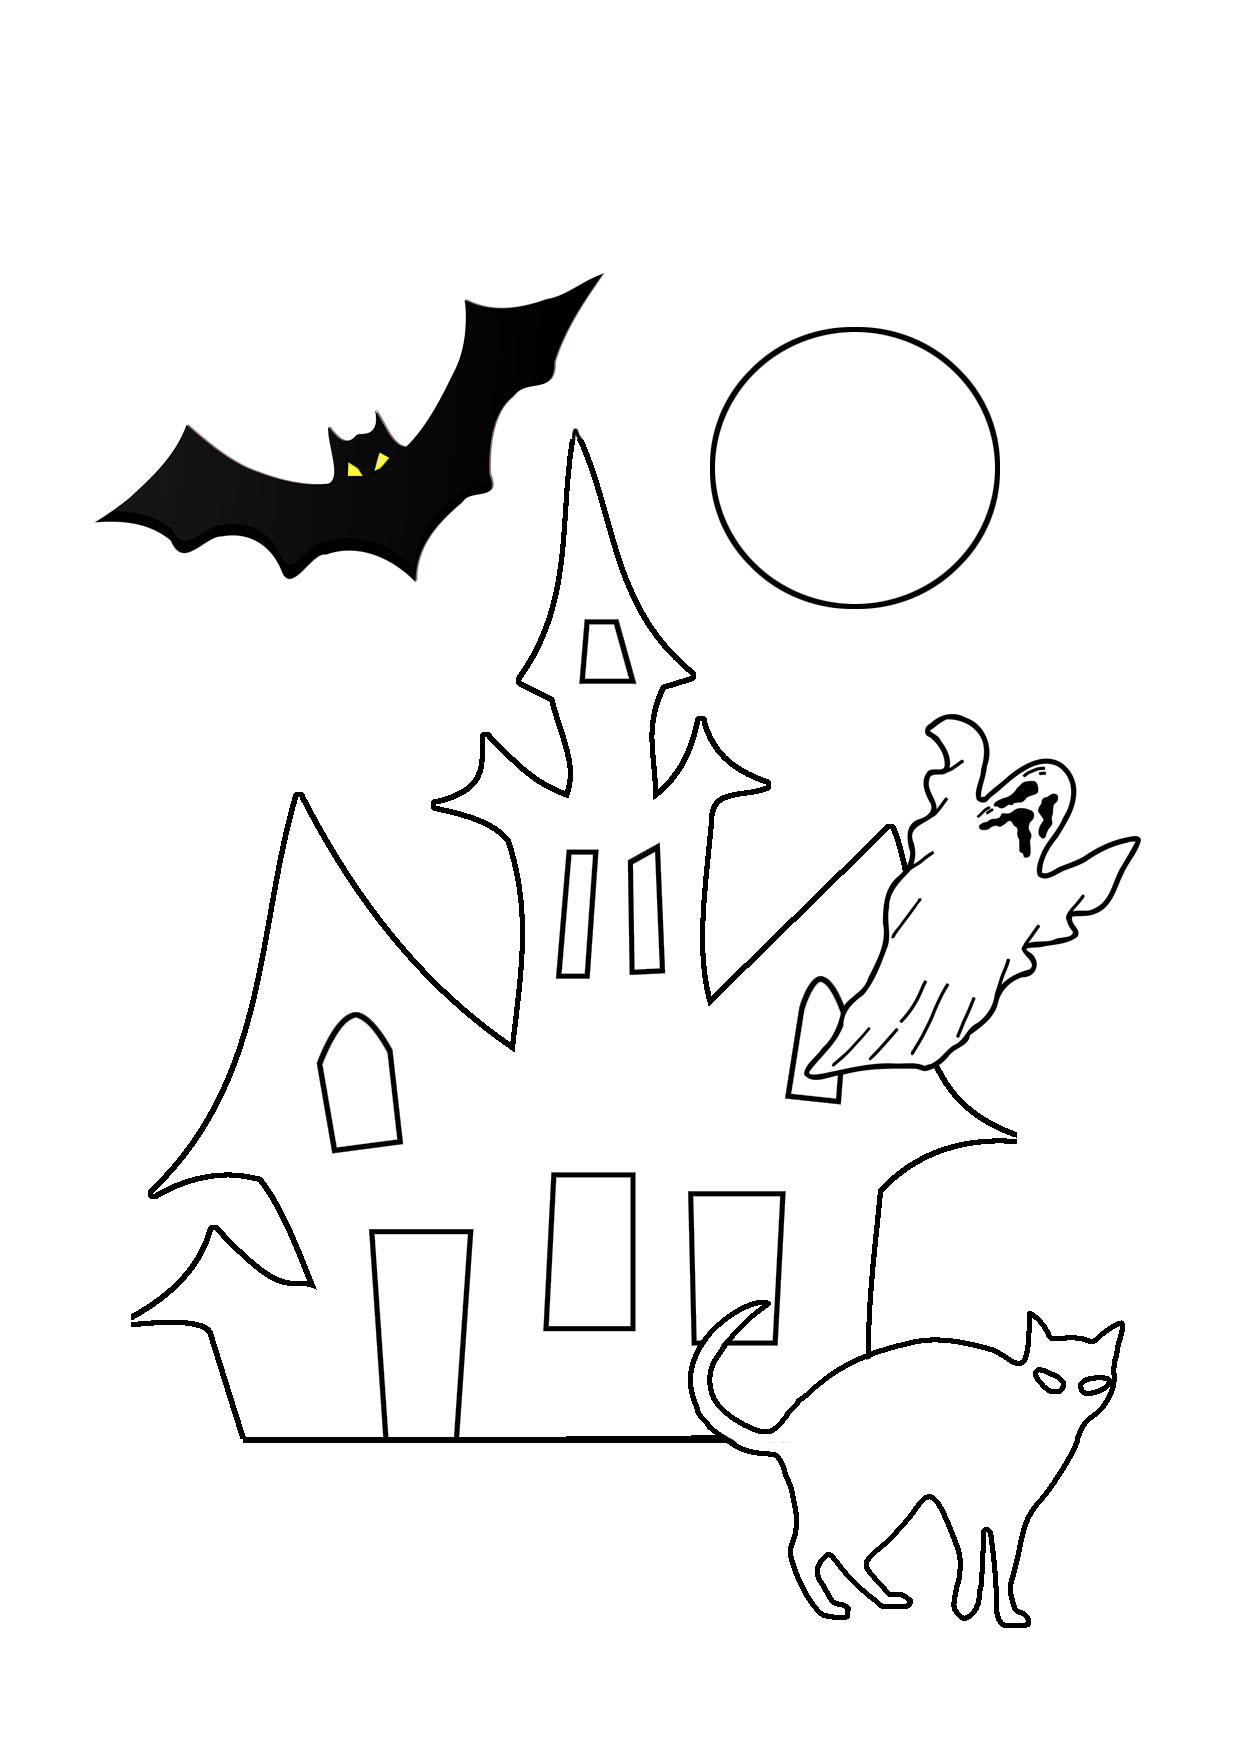 haunted hose ghost moon bat